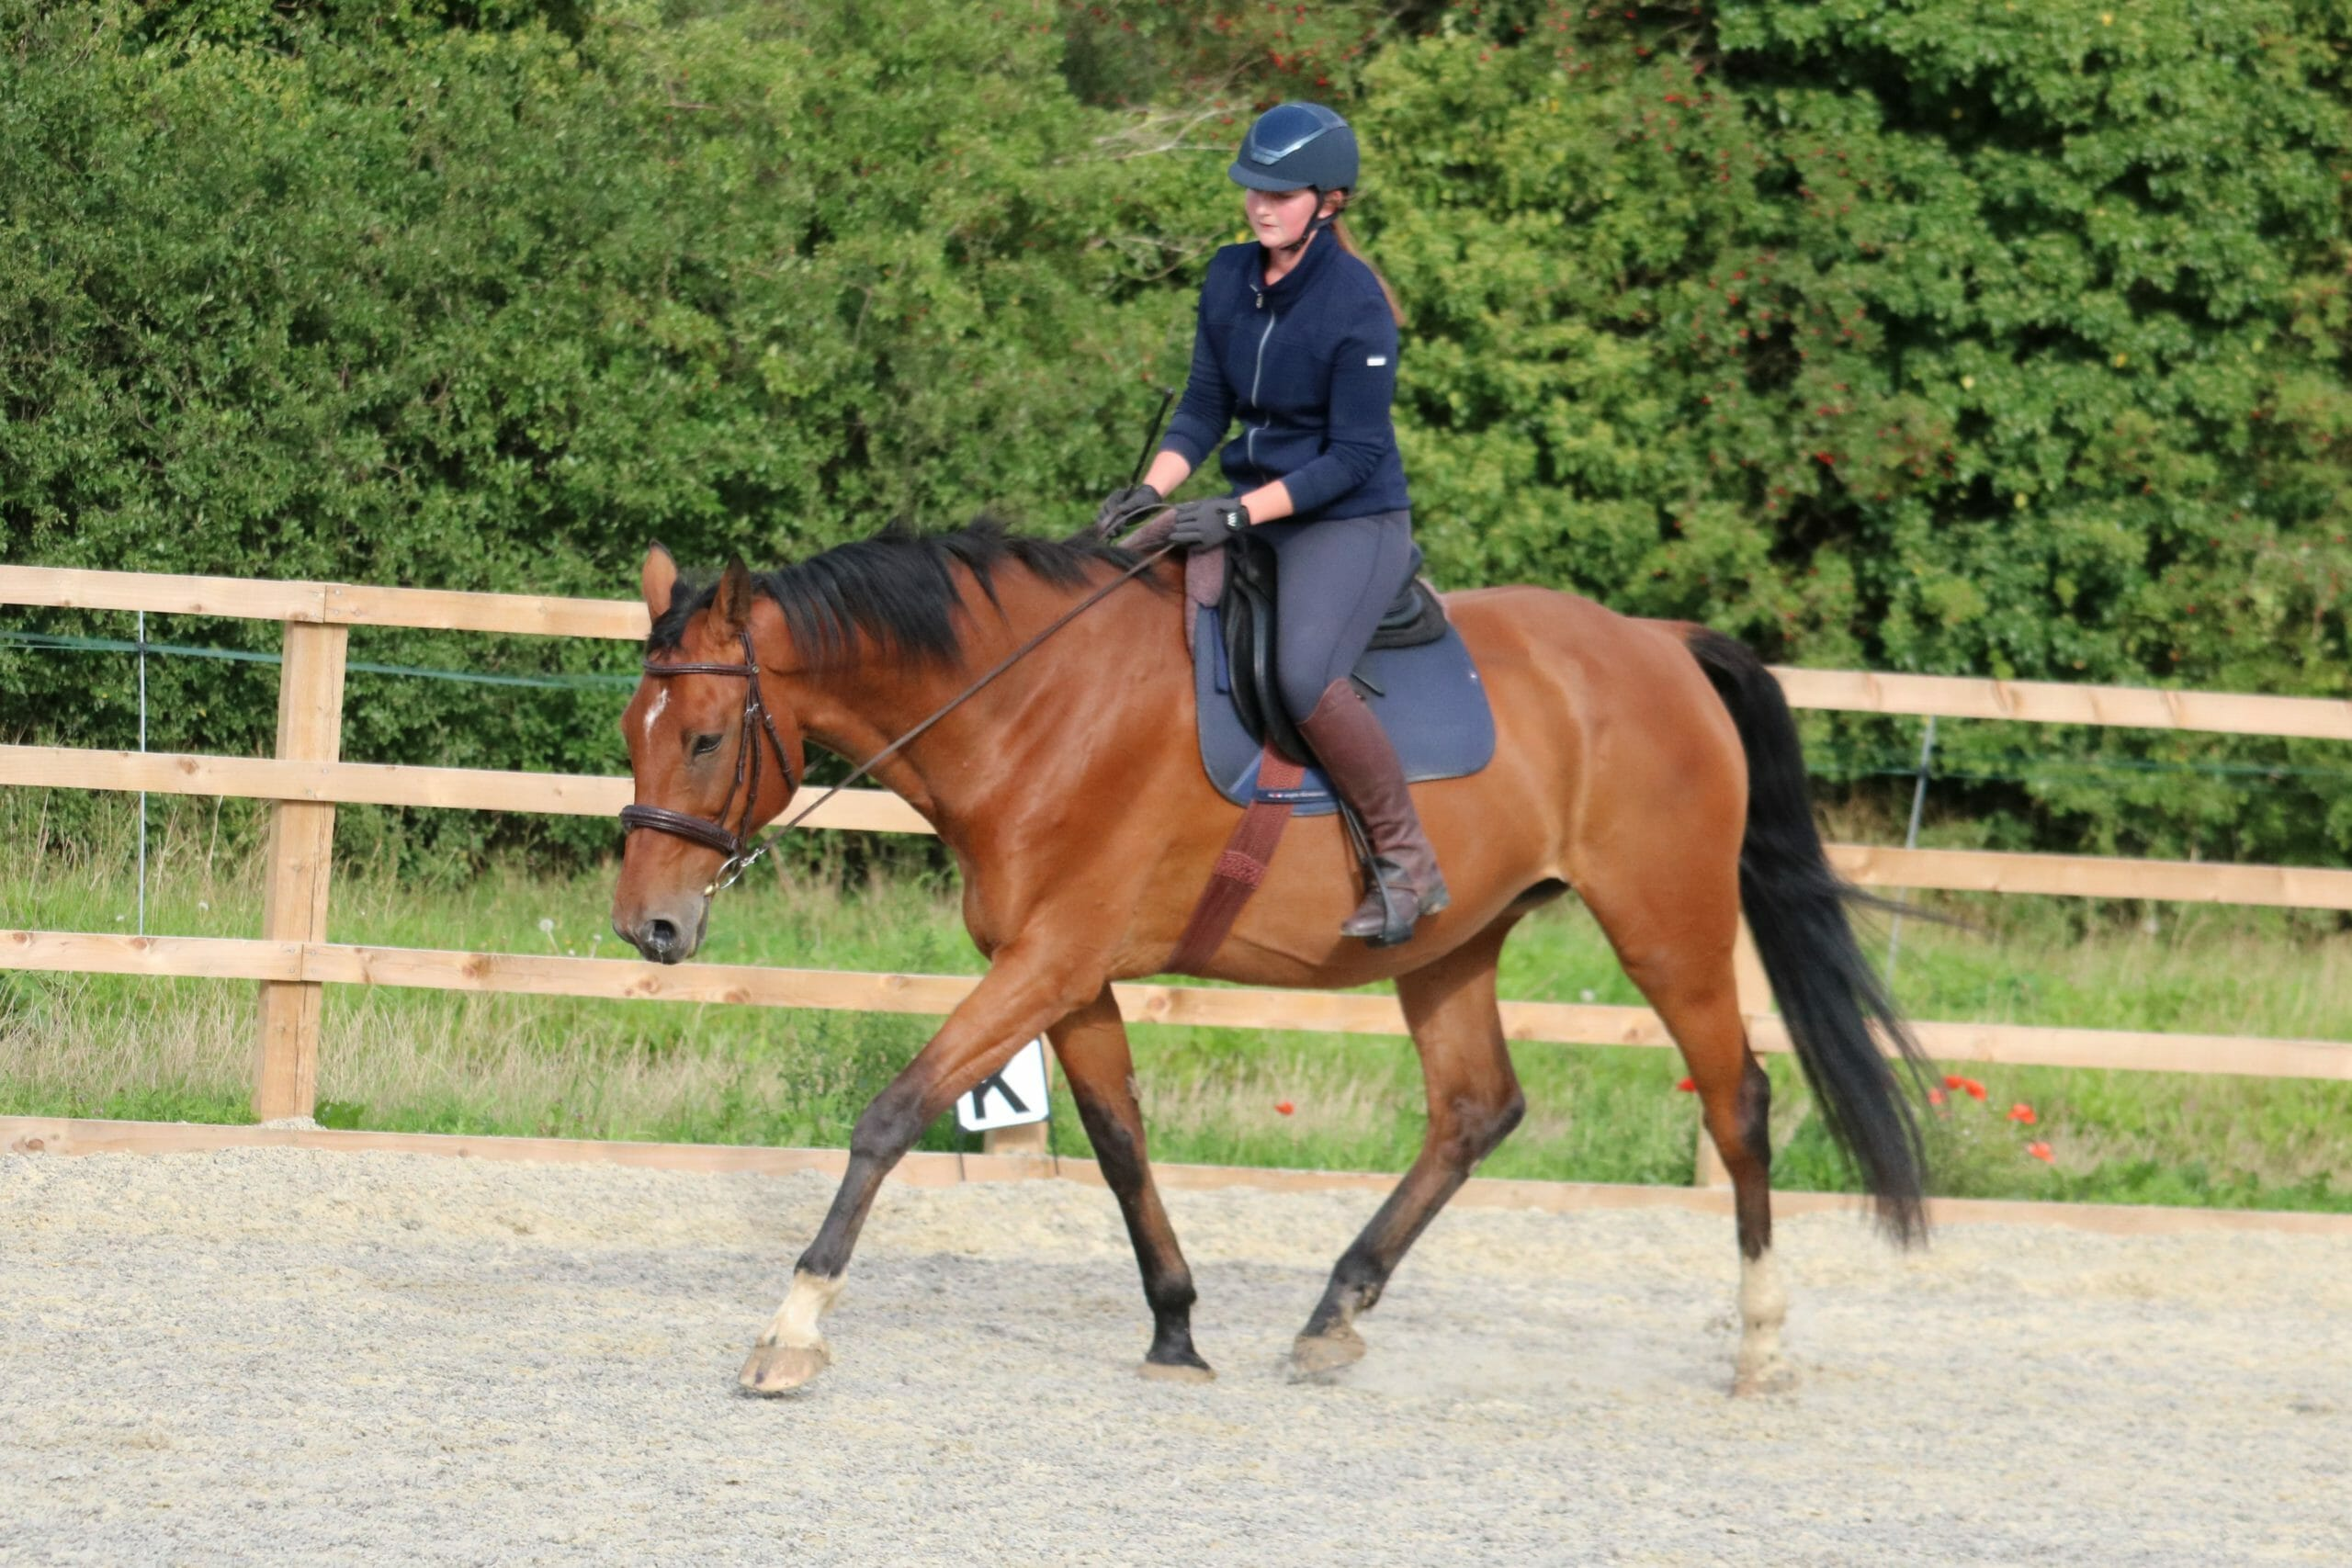 Posture training for your horse - what to look for